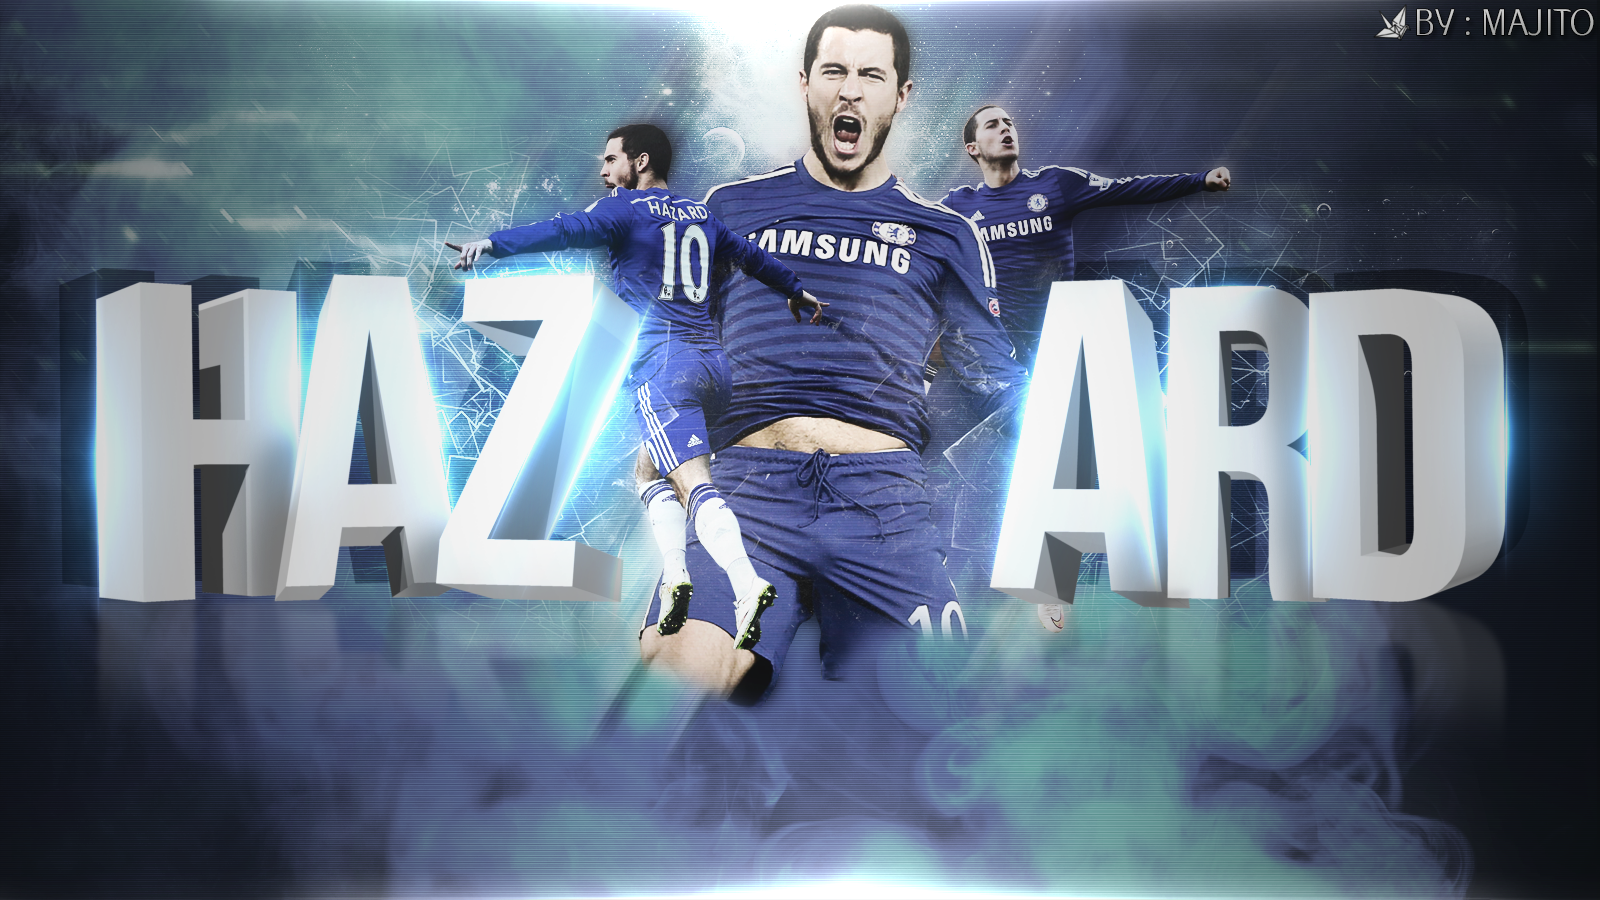 Eden Hazard Wallpapers High Resolution and Quality Download